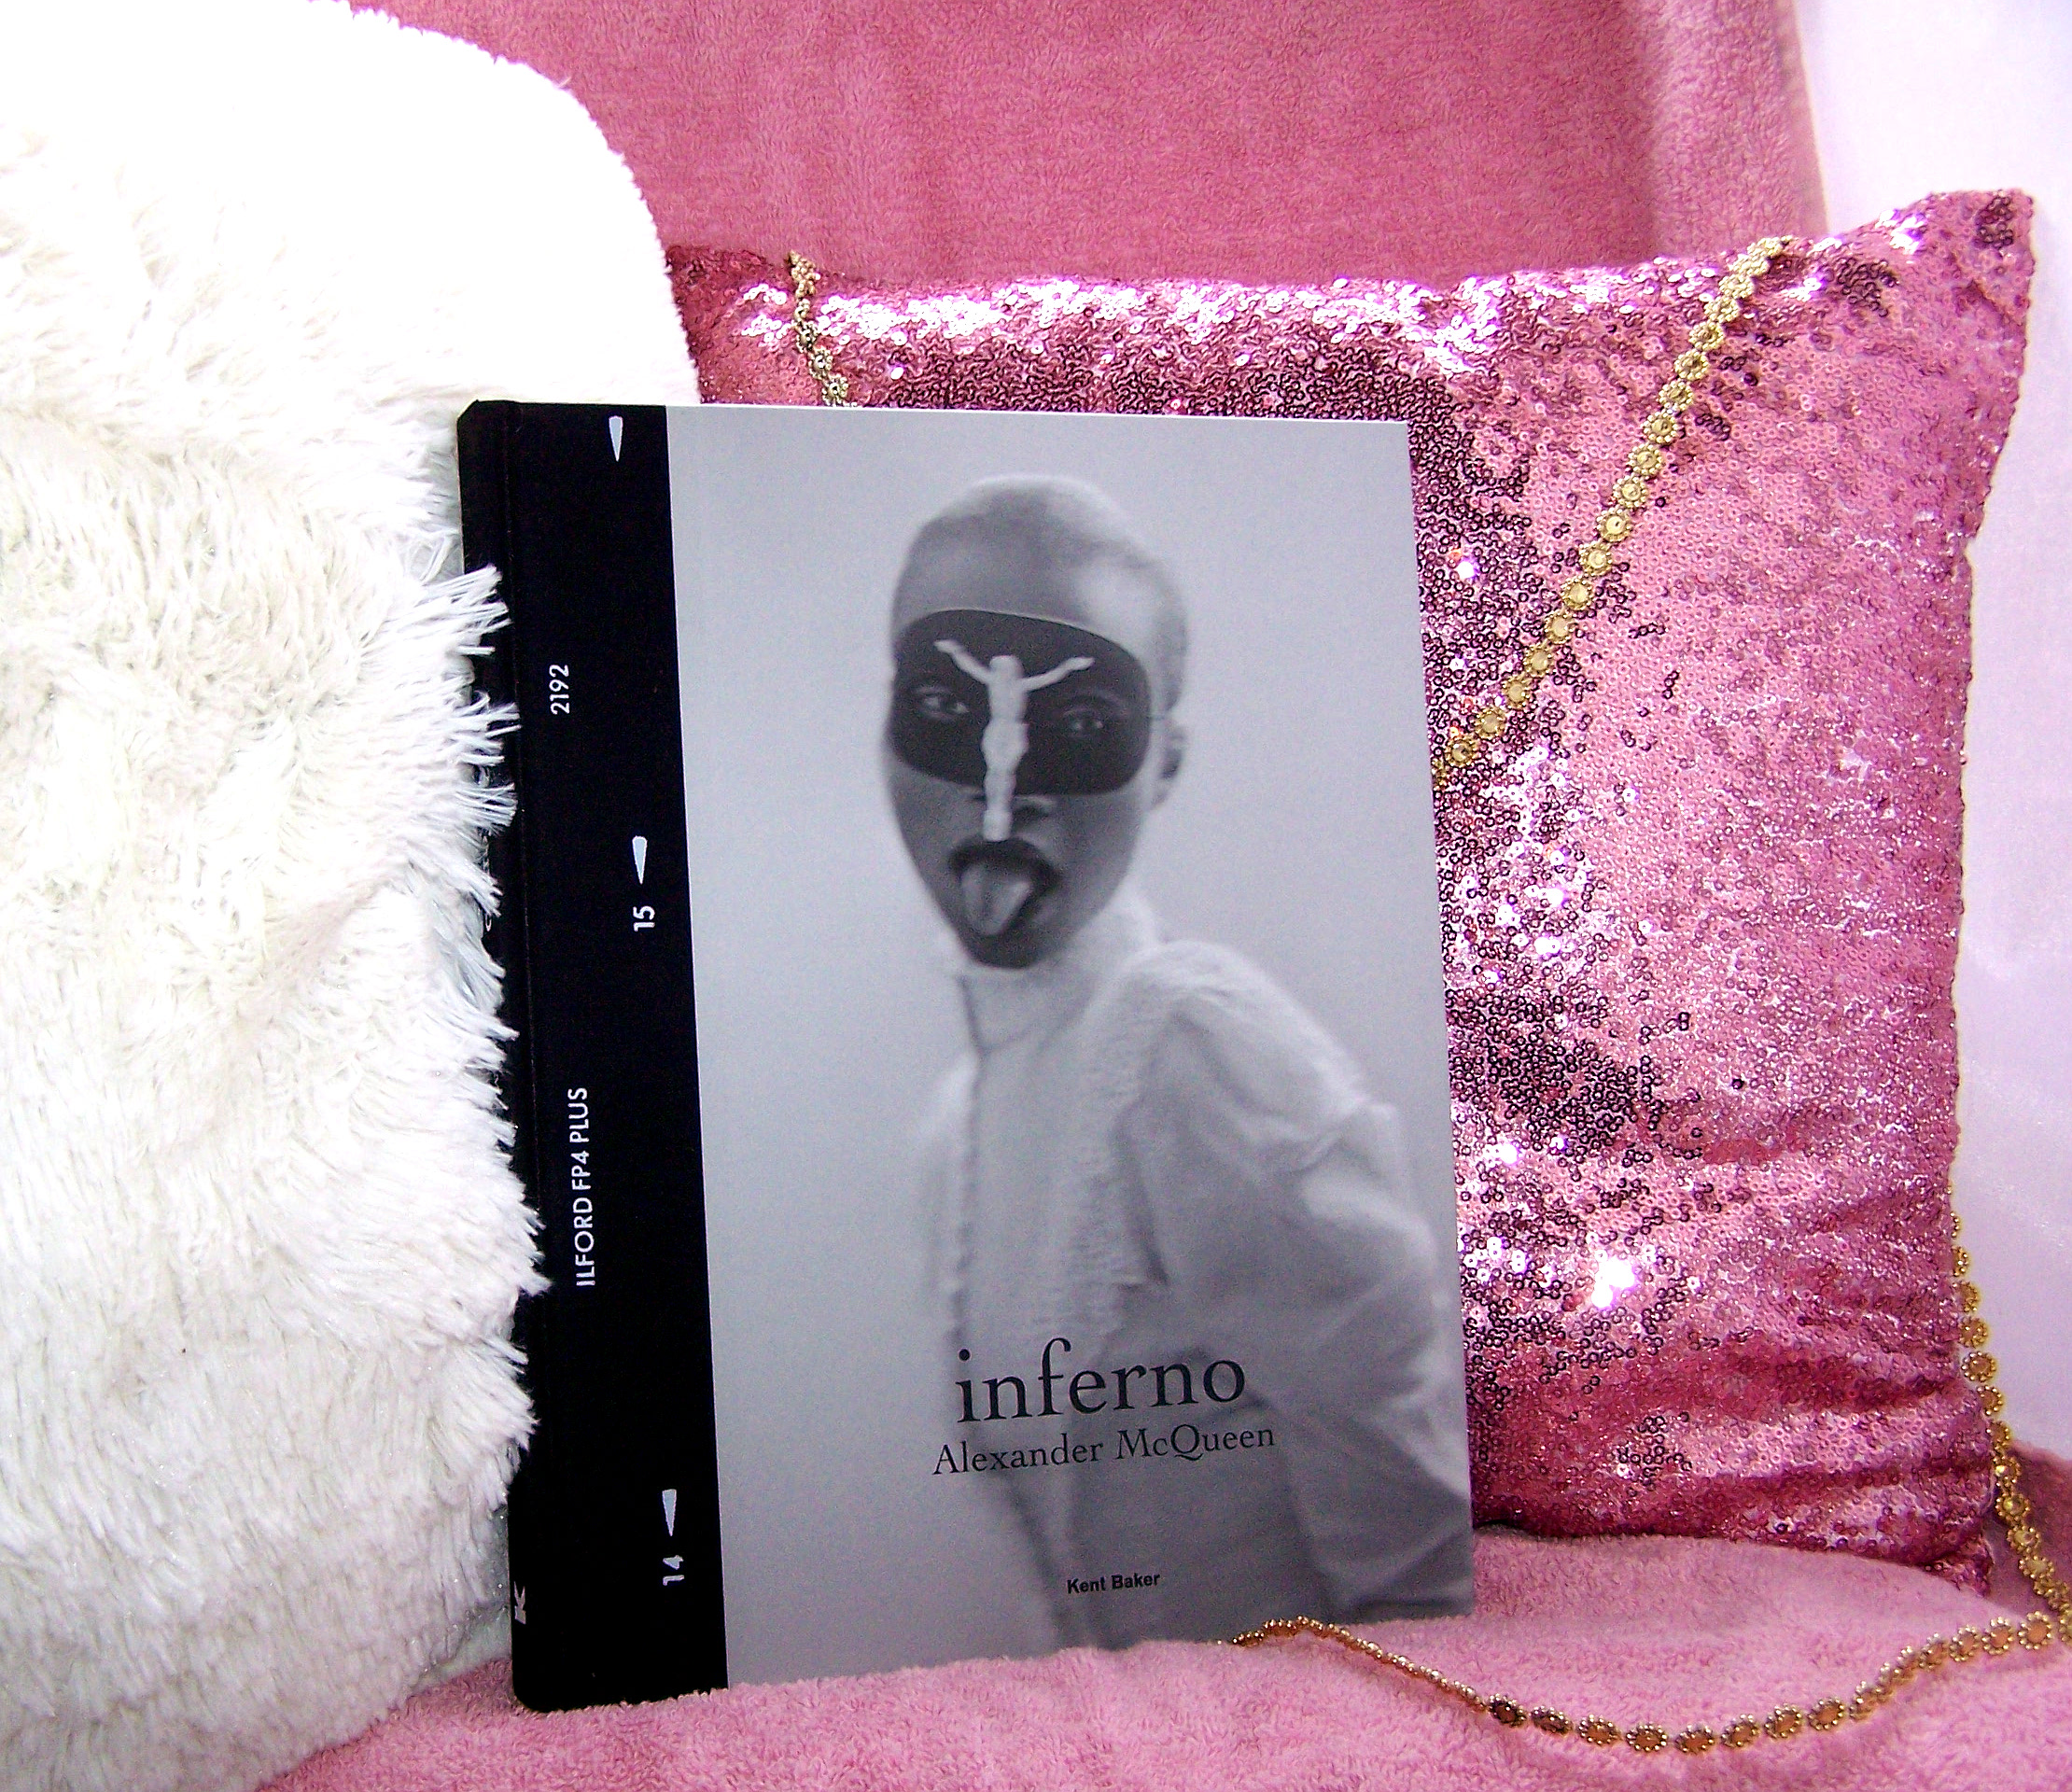 Inferno: Alexander McQueen: Holiday Gift Guide Giveaway! Ends 12/20